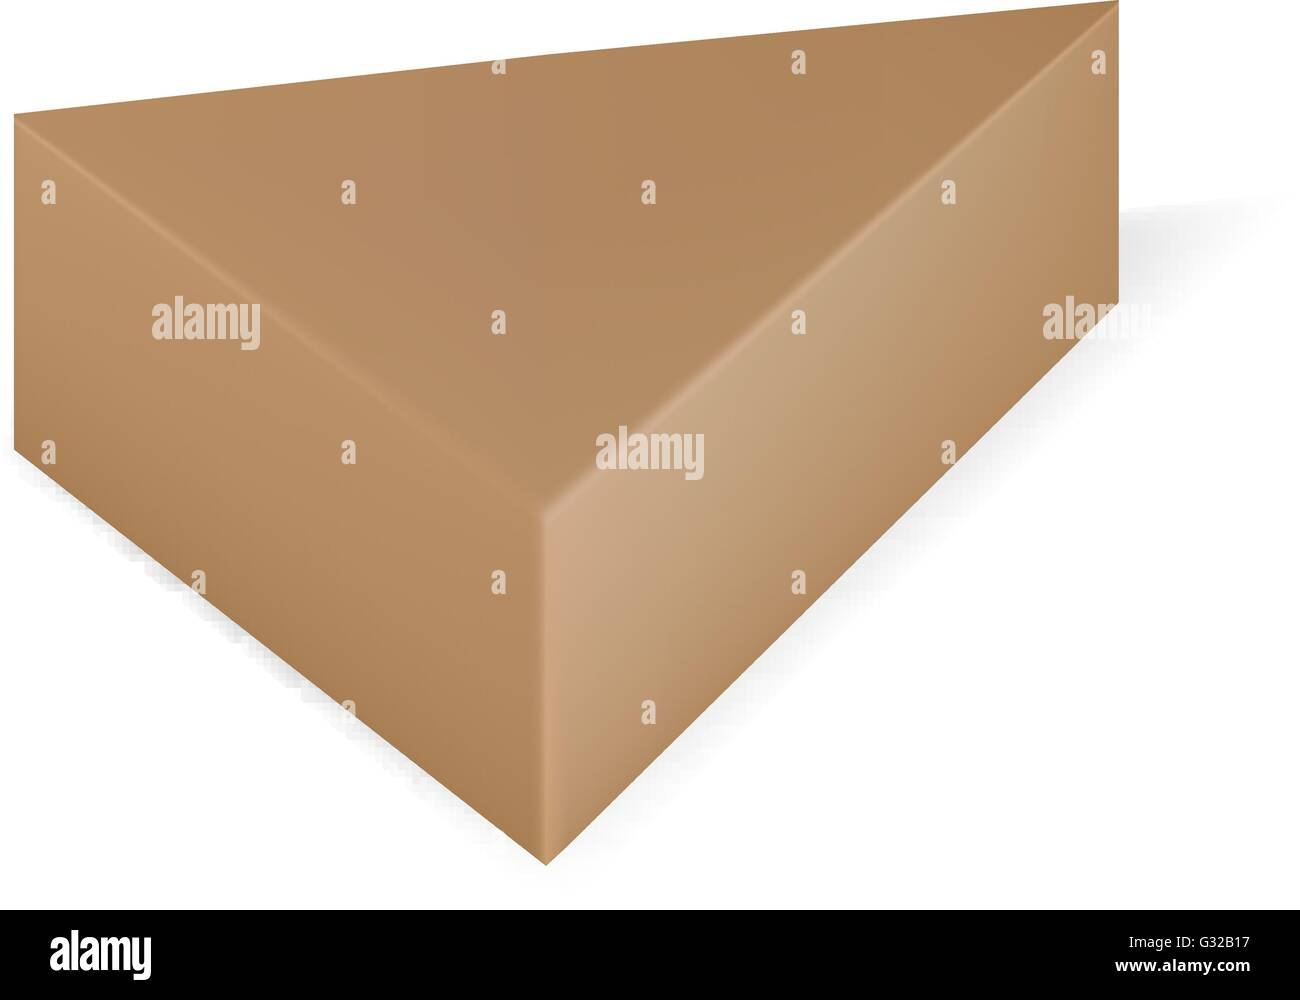 triangle packaging template - vector packaging brown triangle packaging box on isolated